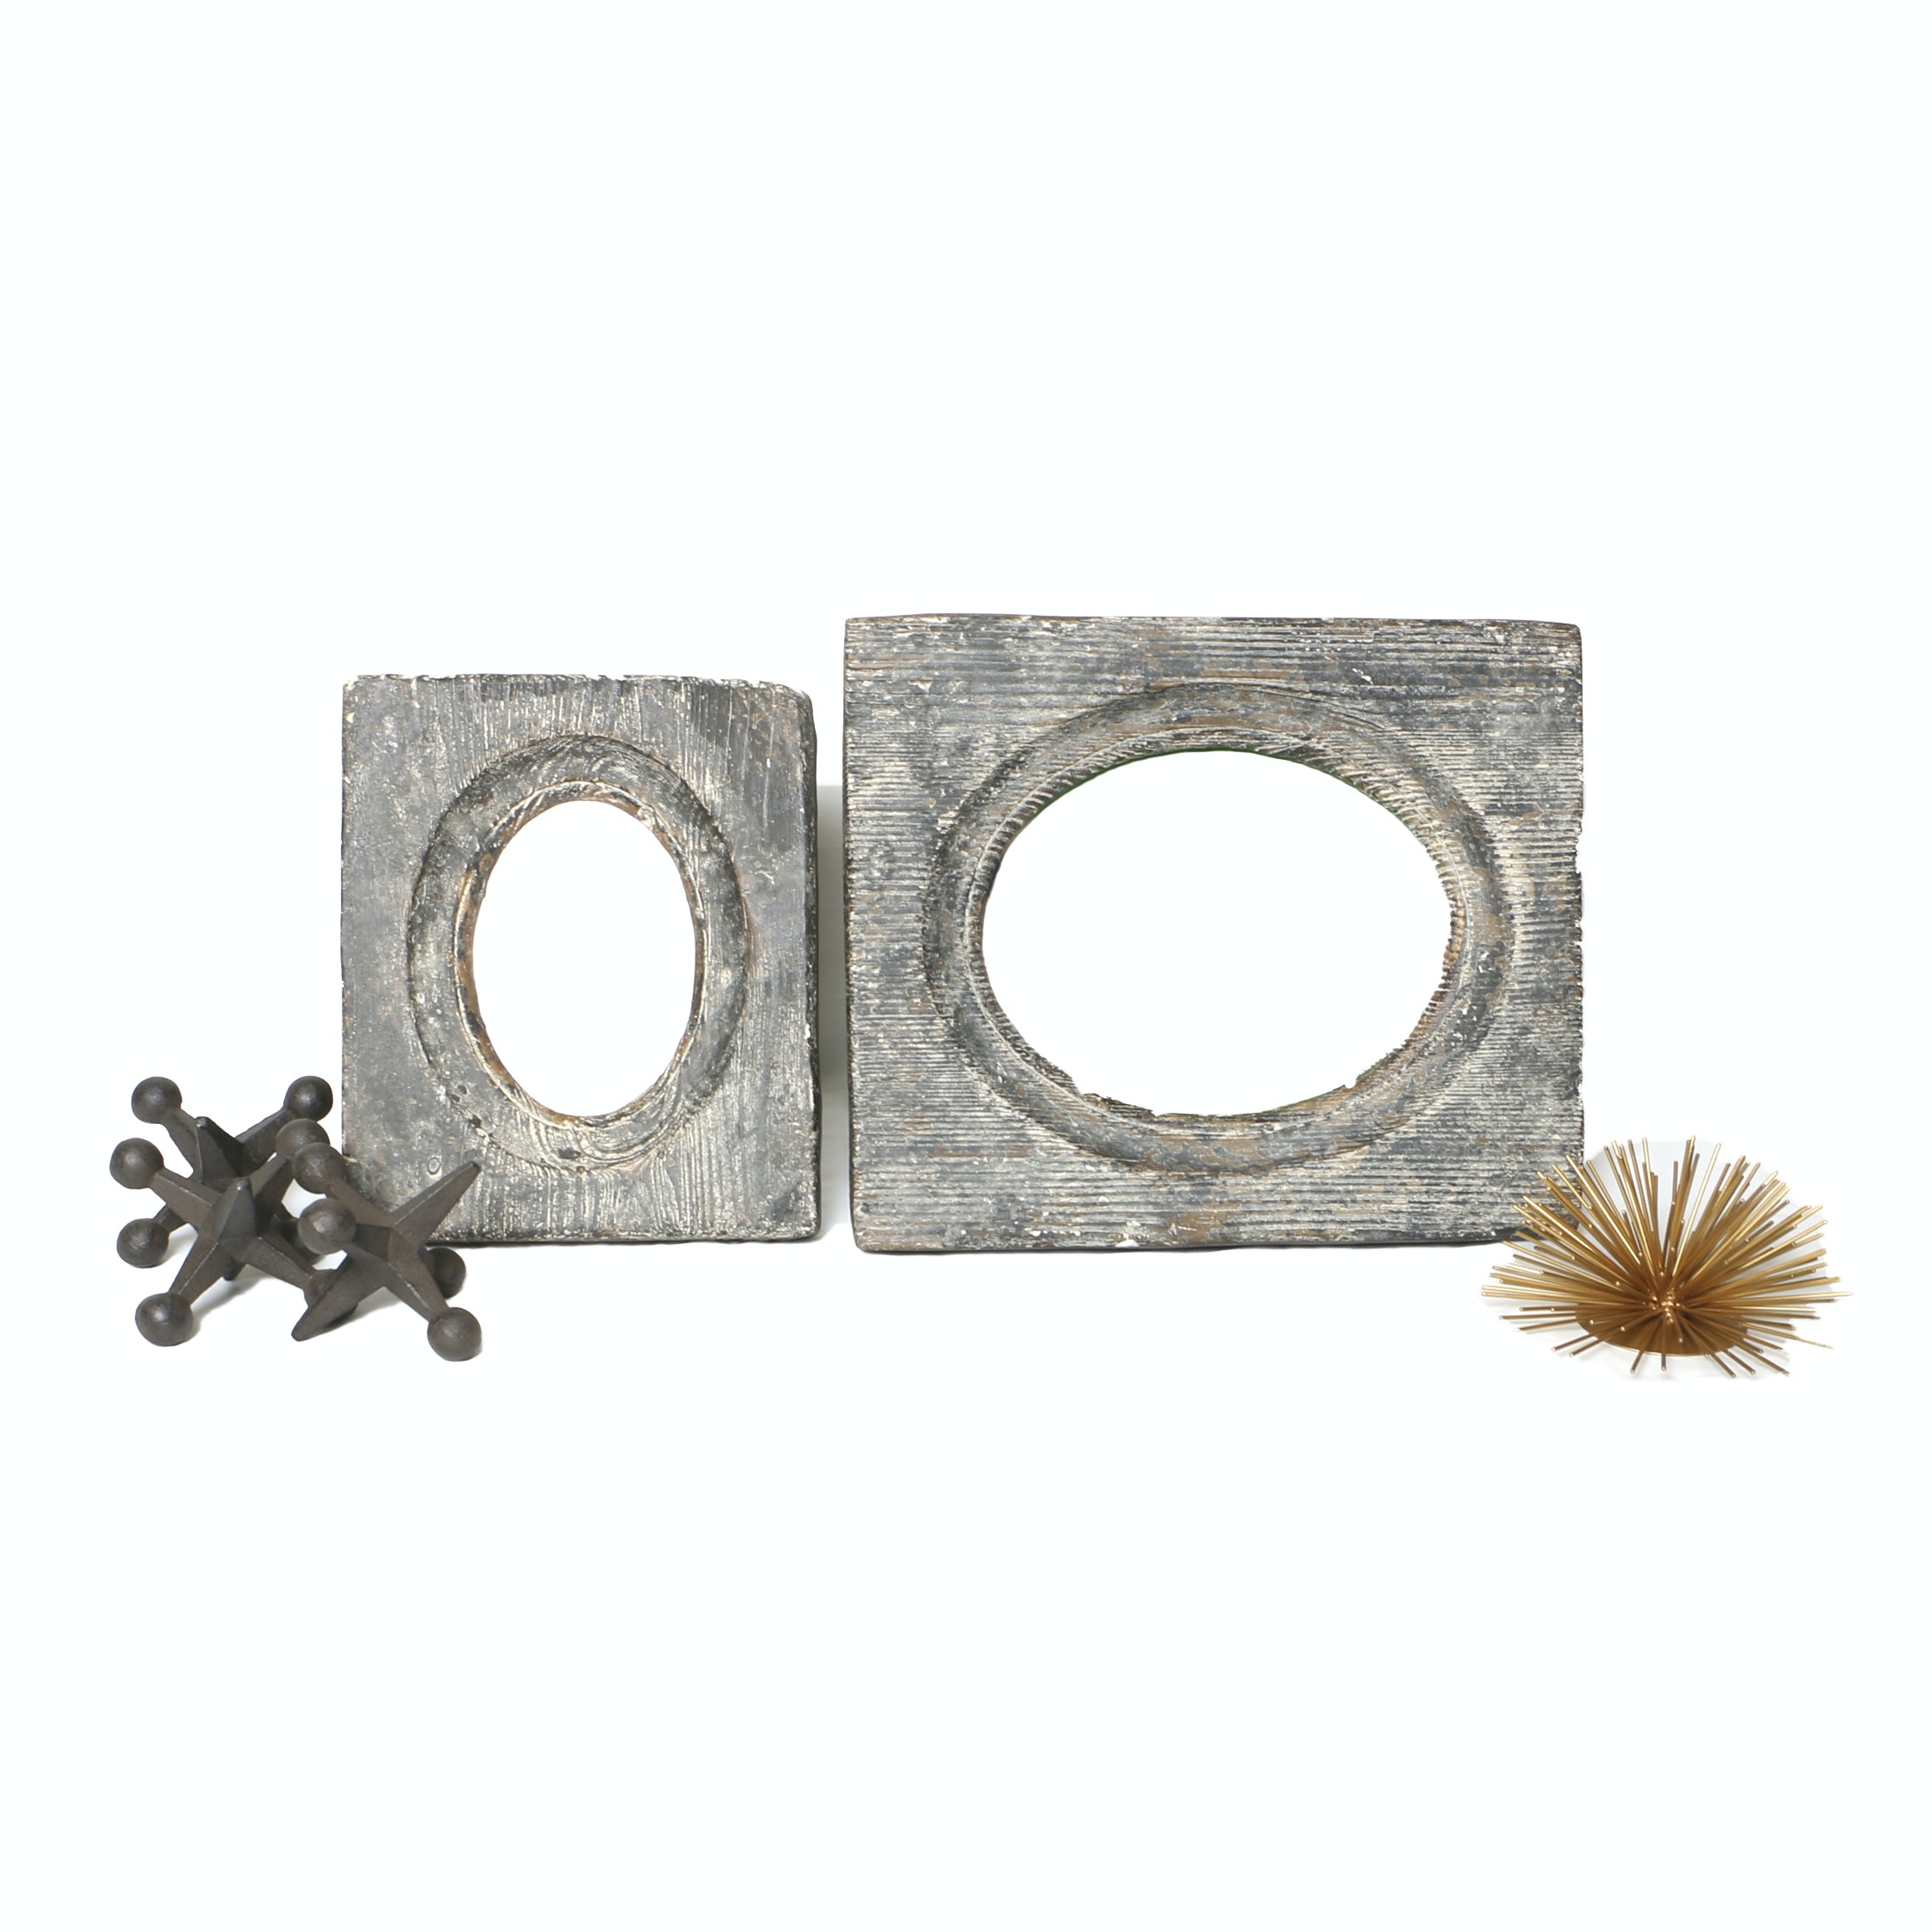 Distressed Table Top Picture Frames with Metal Jacks and Sunburst Figurine